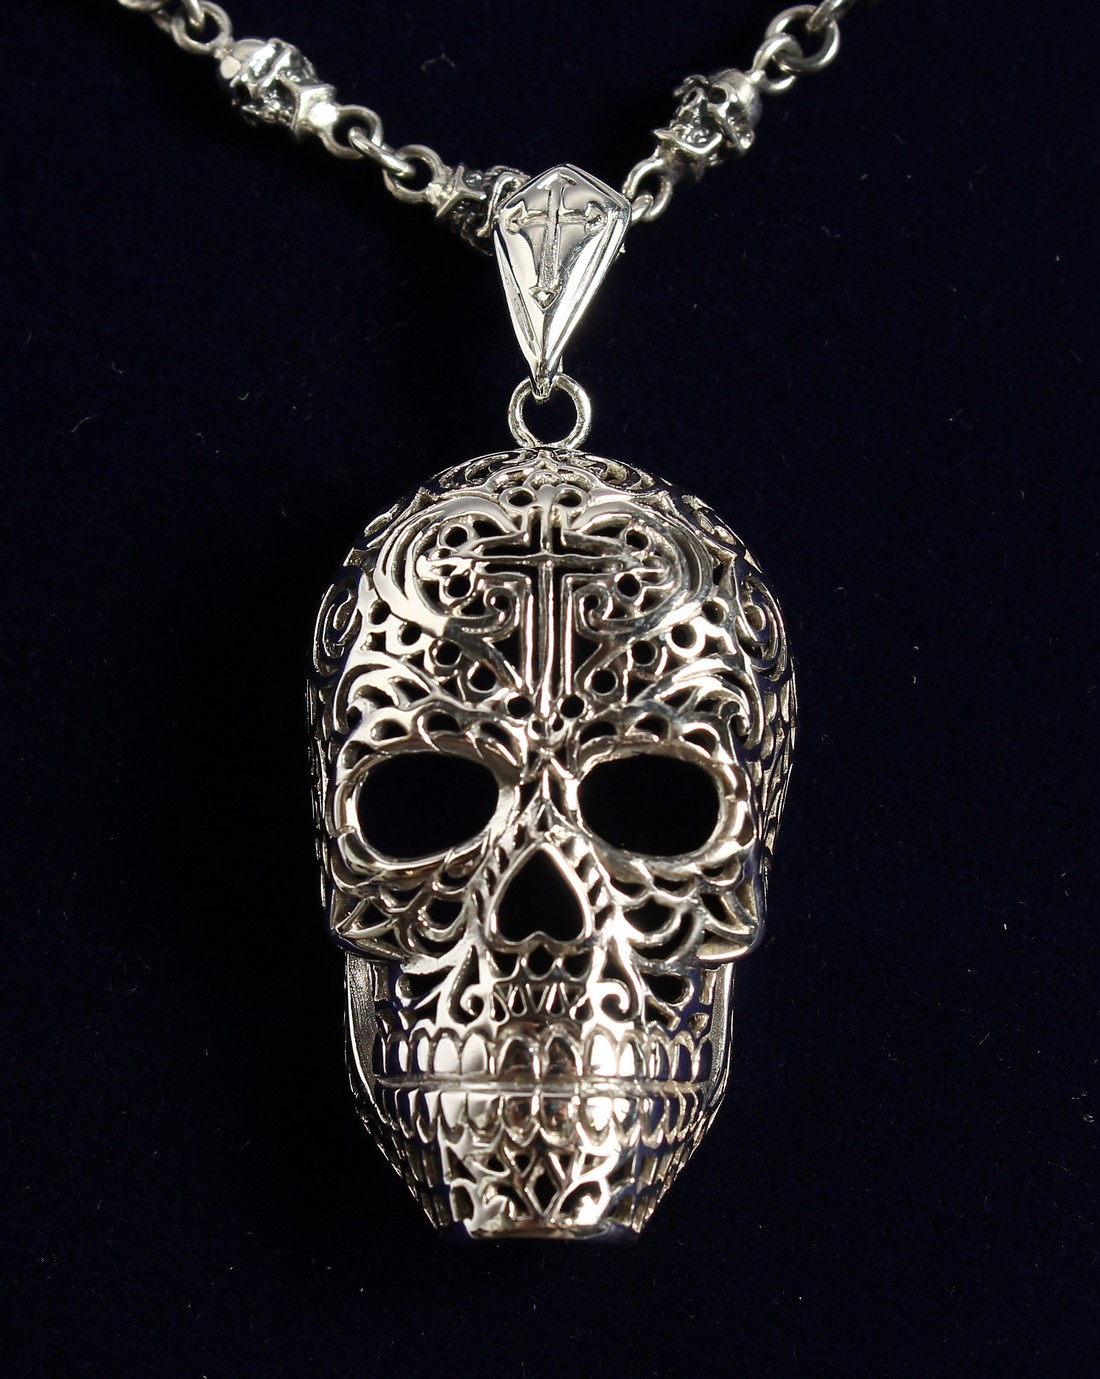 A SILVER SKULL ON A CHAIN.